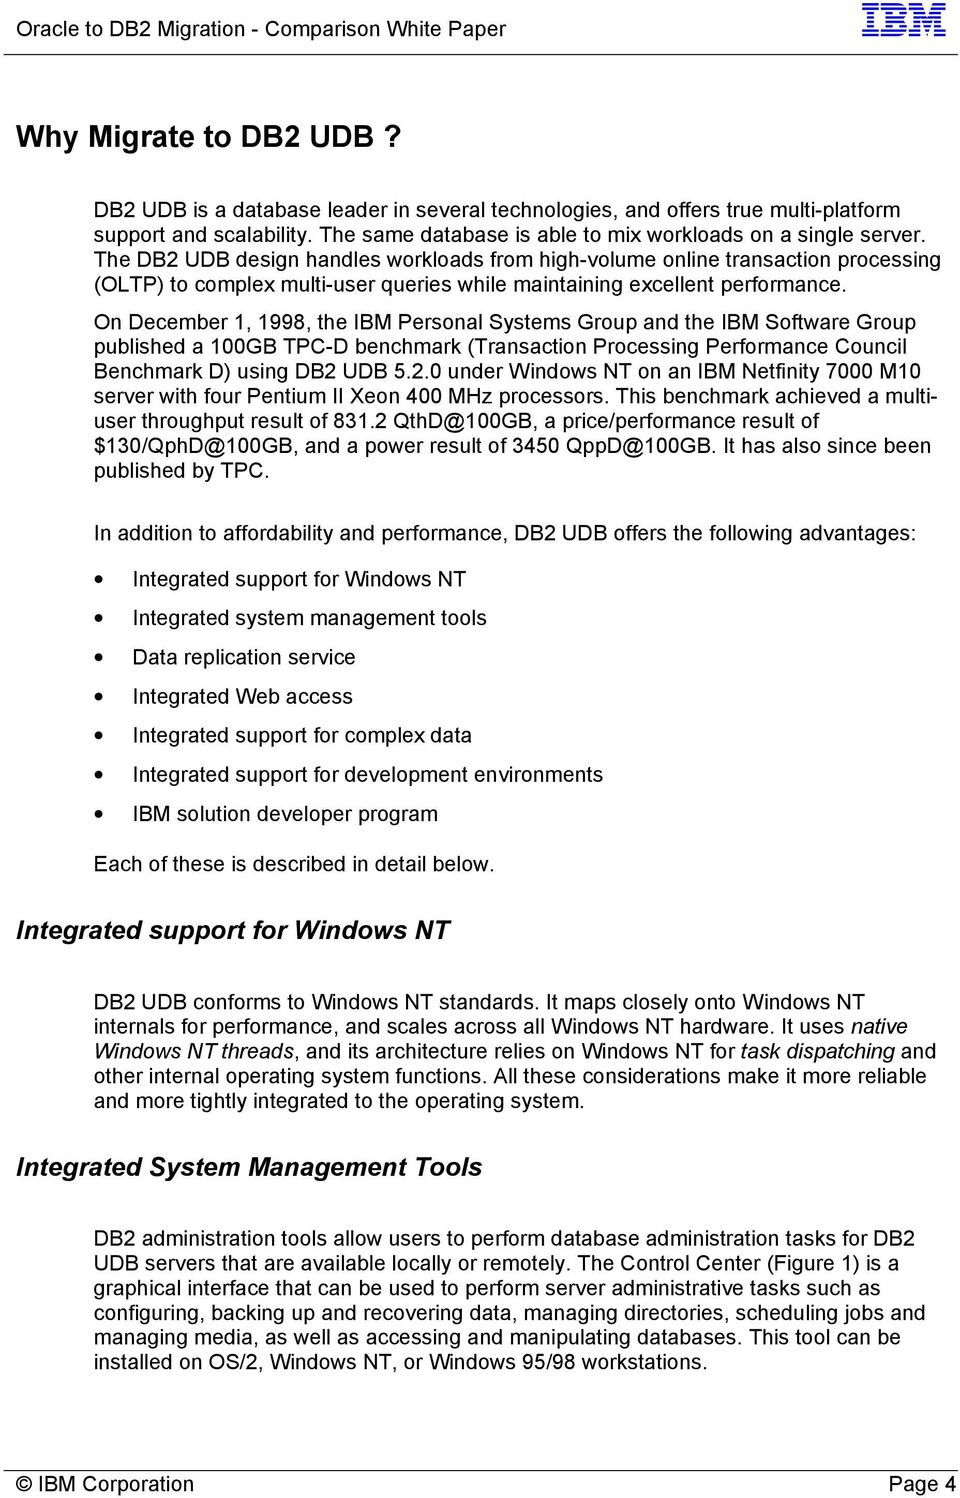 On December 1, 1998, the IBM Personal Systems Group and the IBM Software Group published a 100GB TPC-D benchmark (Transaction Processing Performance Council Benchmark D) using DB2